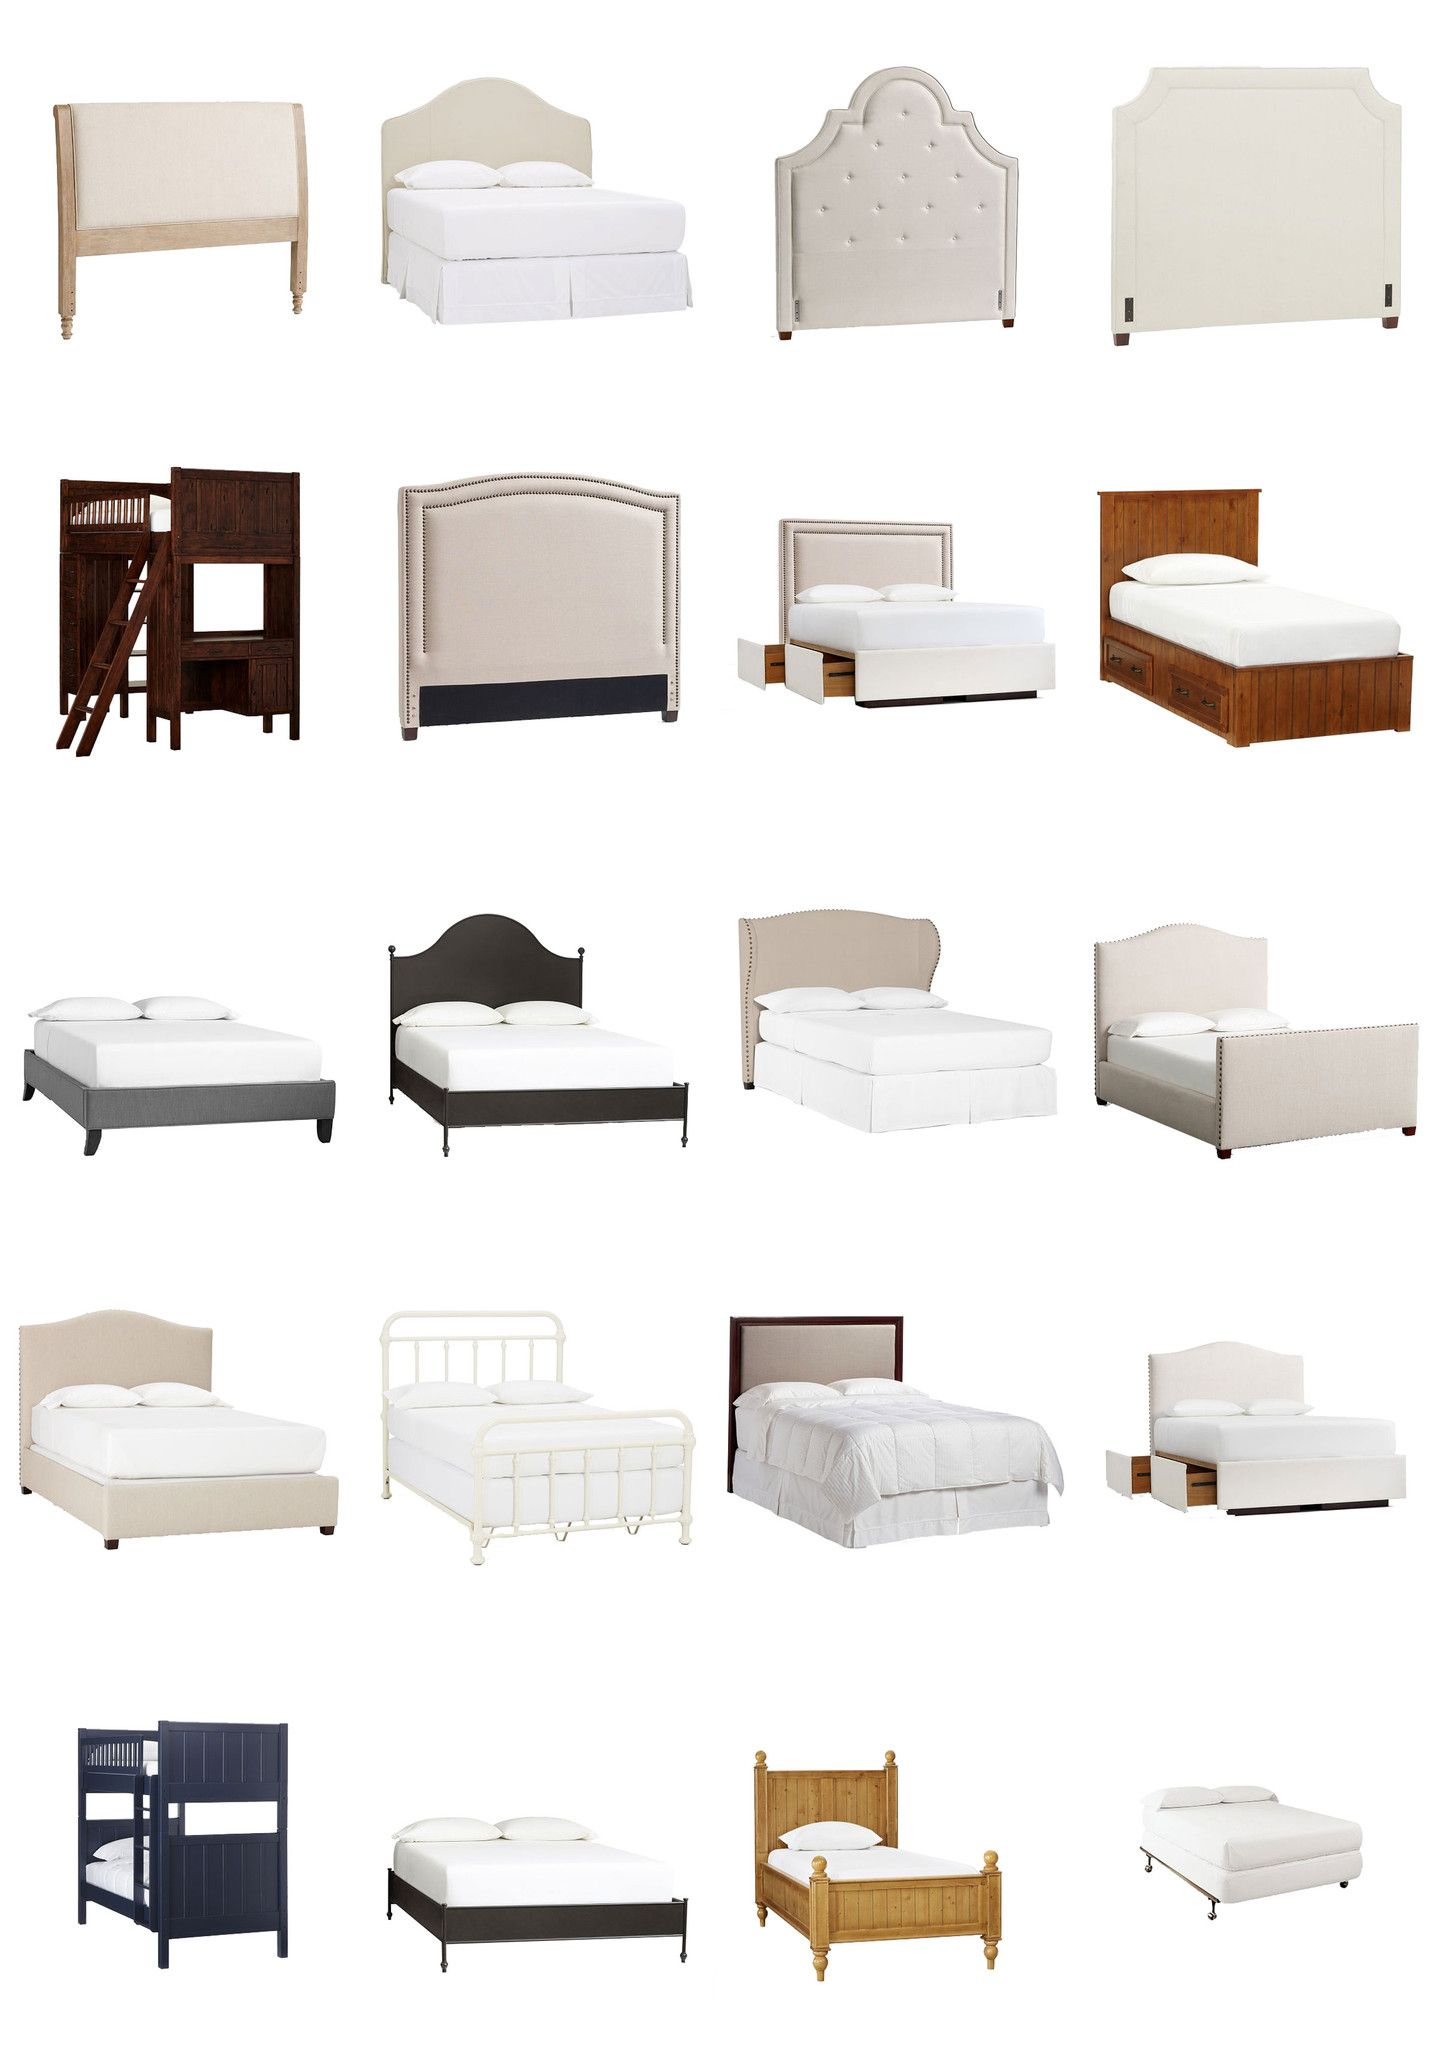 Photoshop Psd Bed Blocks V1 Cad Design Free Cad Blocks Drawings  -> Muebles Sala De Estar Autocad